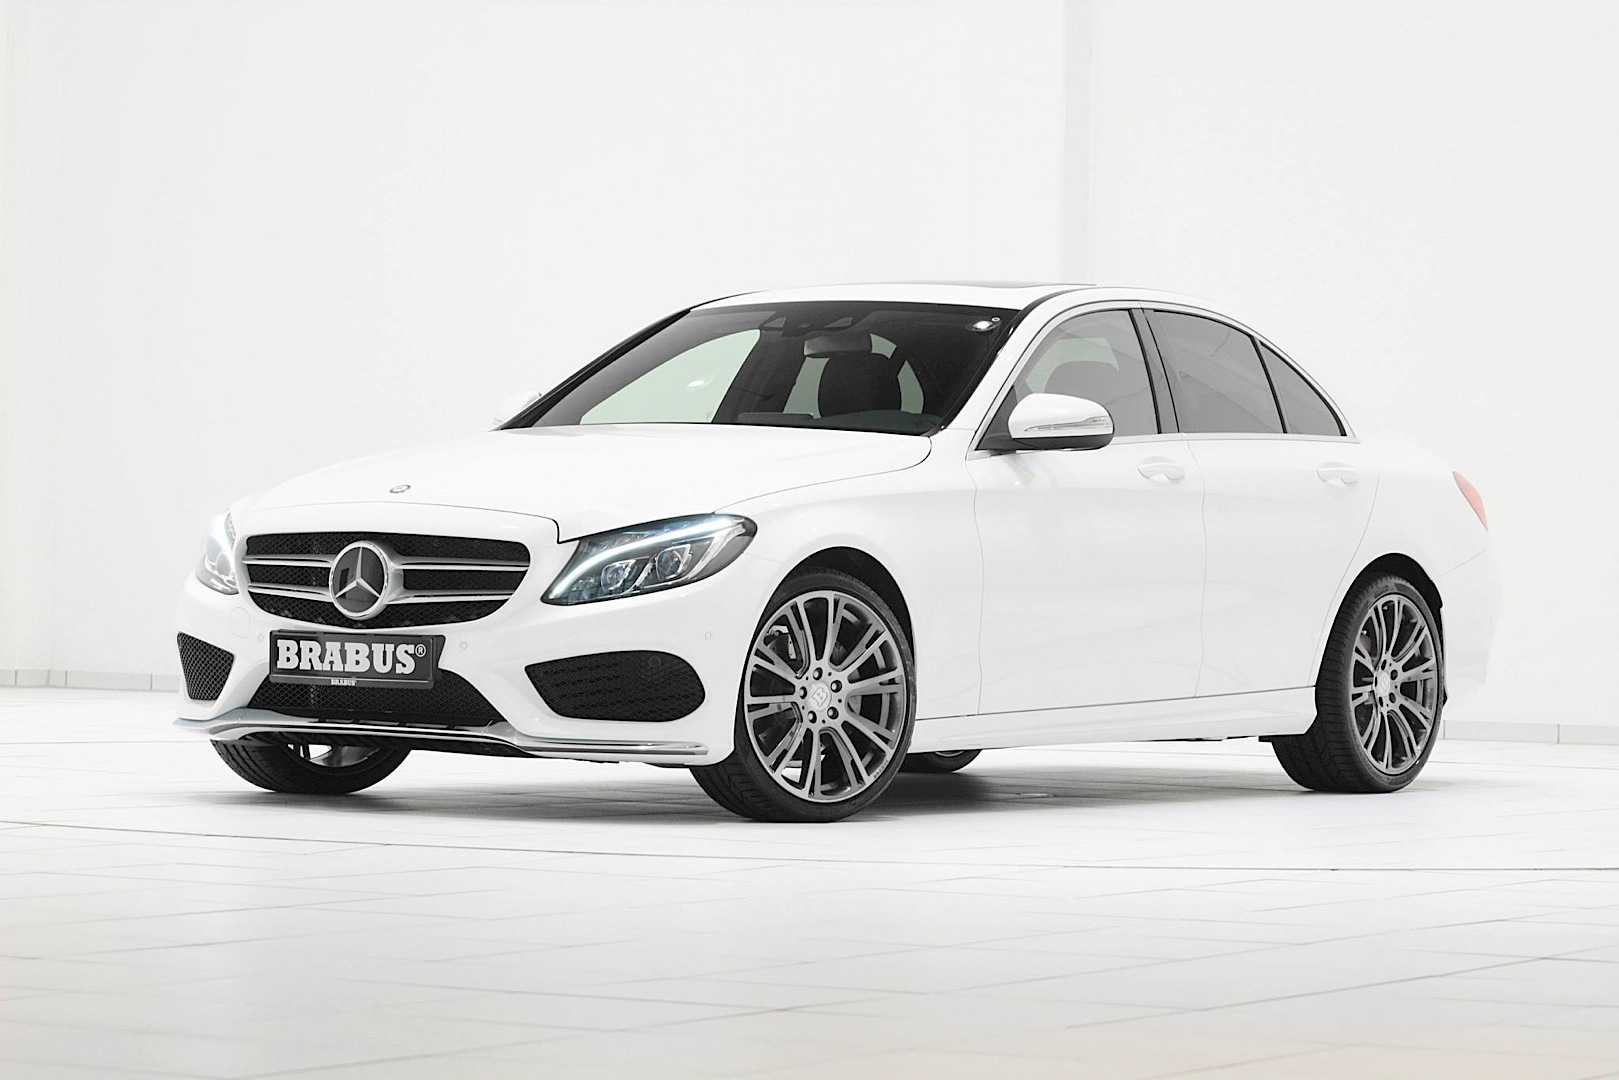 brabus launches wheels for the new c class w205 autoevolution. Black Bedroom Furniture Sets. Home Design Ideas